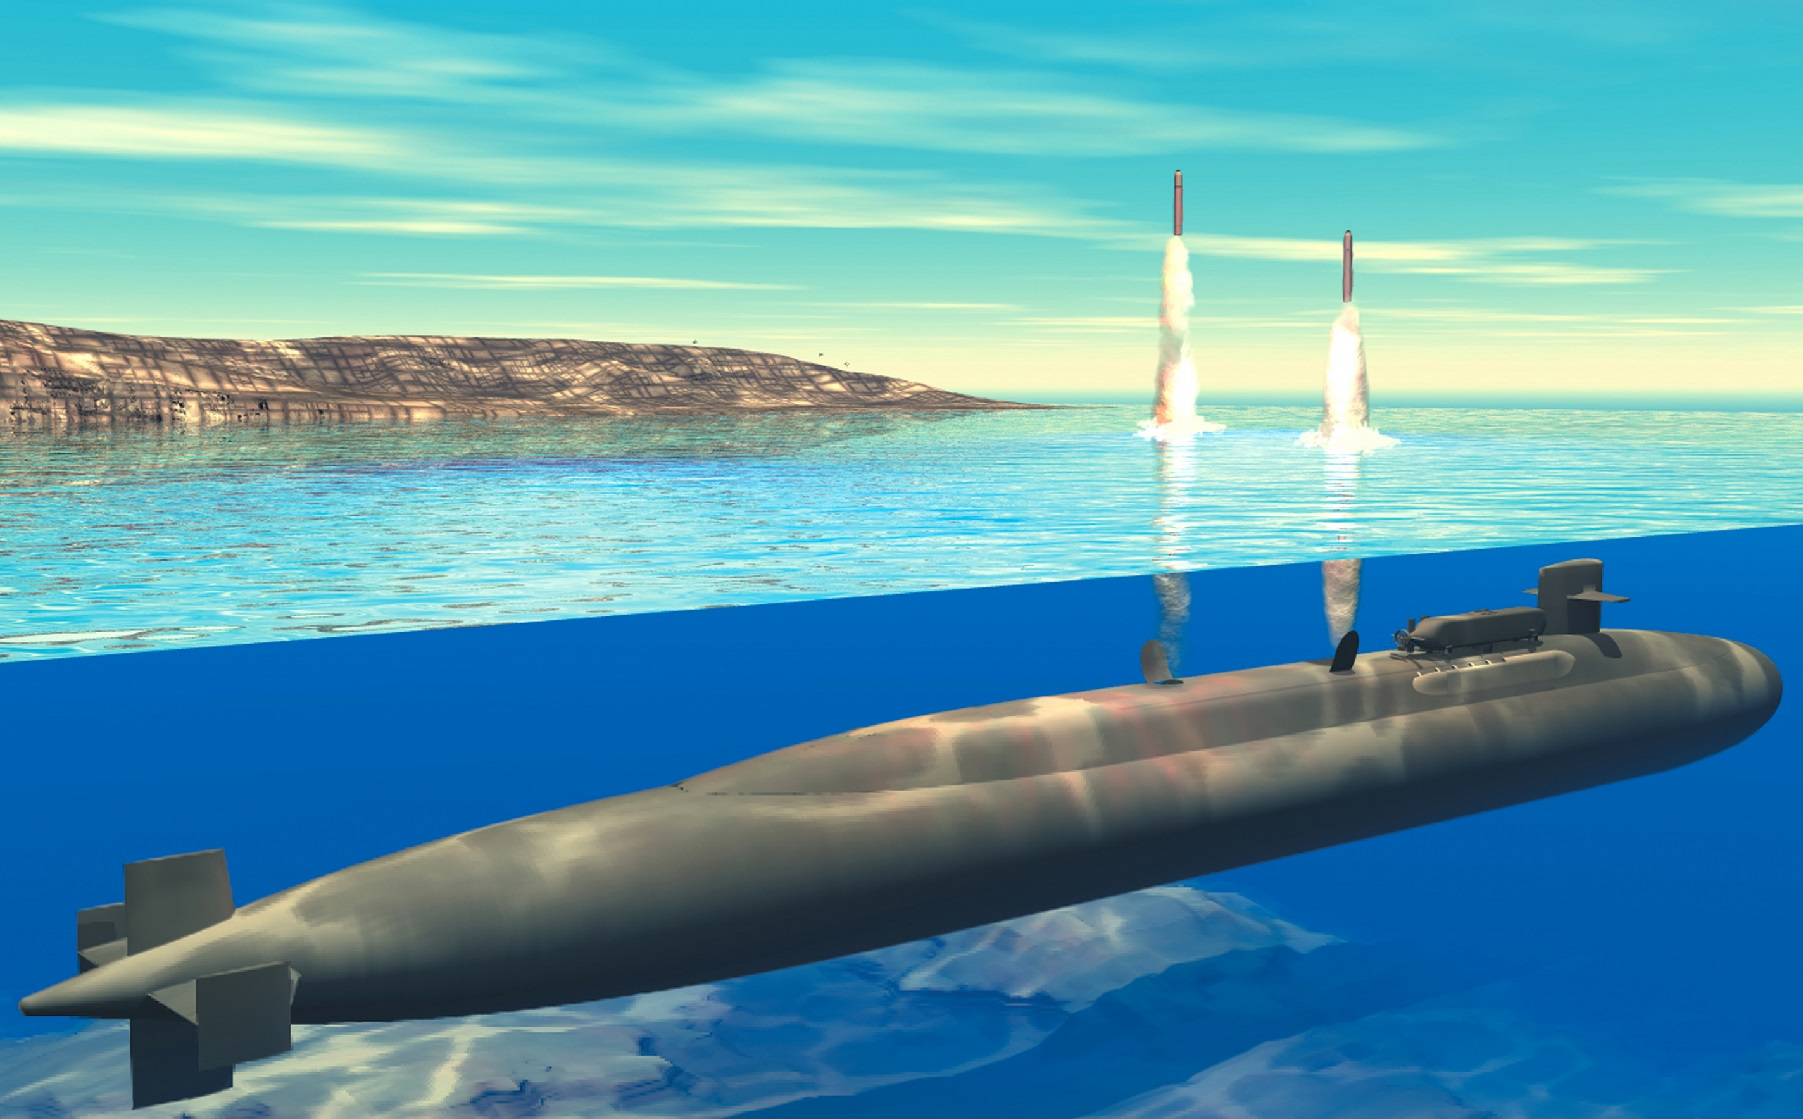 Mic Drop, Nuclear Submarine Style: The U.S. Navy Surfaced Three of These Subs To Warn China